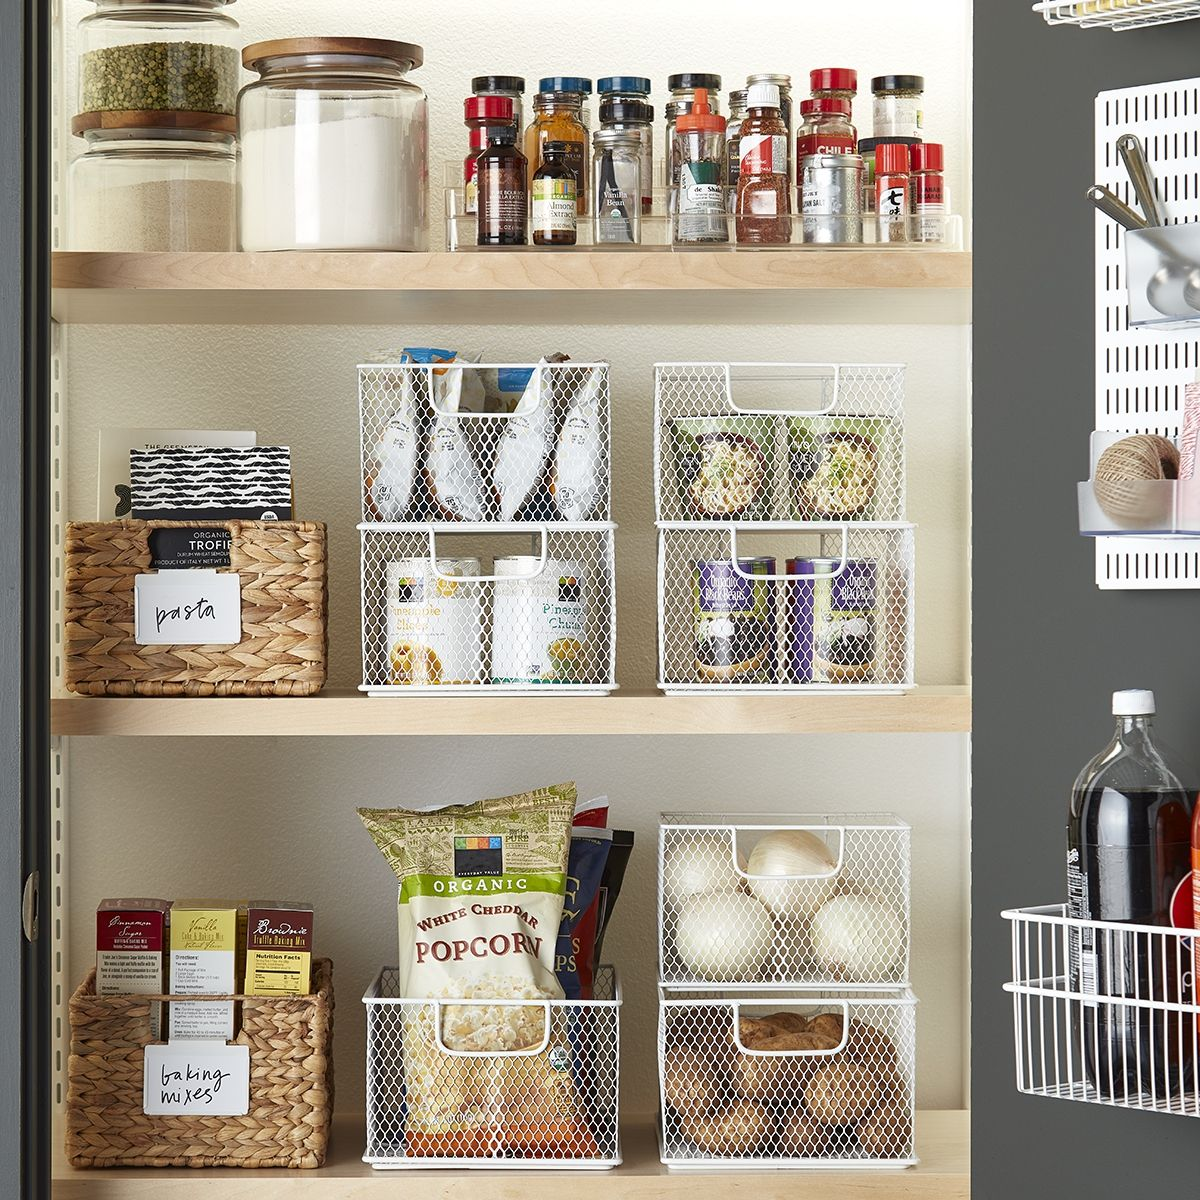 Wire And Water Hyacinth Baskets For Pantry Organization Stackable Bins Diy Pantry Organization Kitchen Storage Organization Storage bins for kitchen pantry